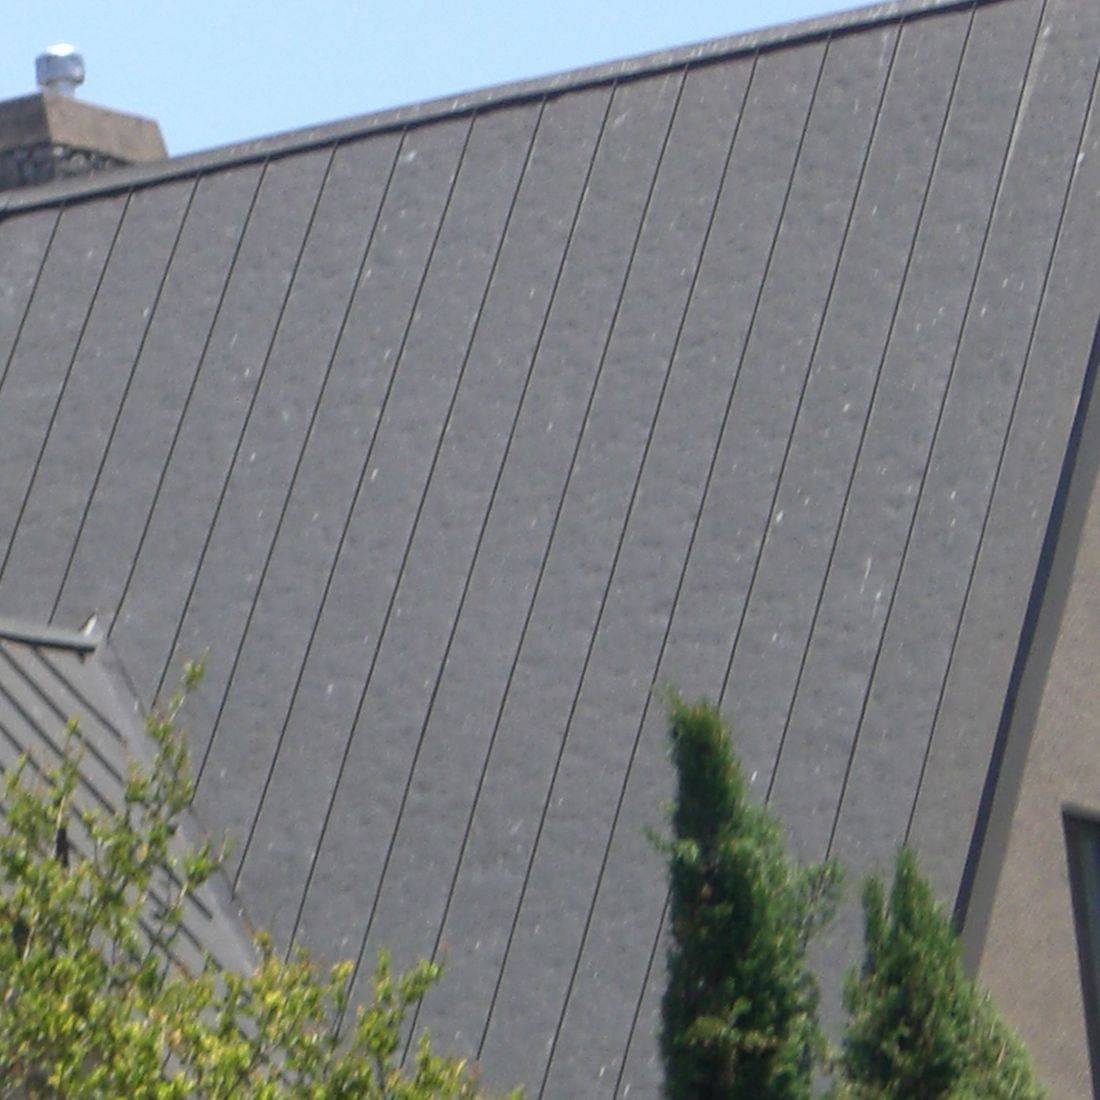 Metal roof dented from hail damage